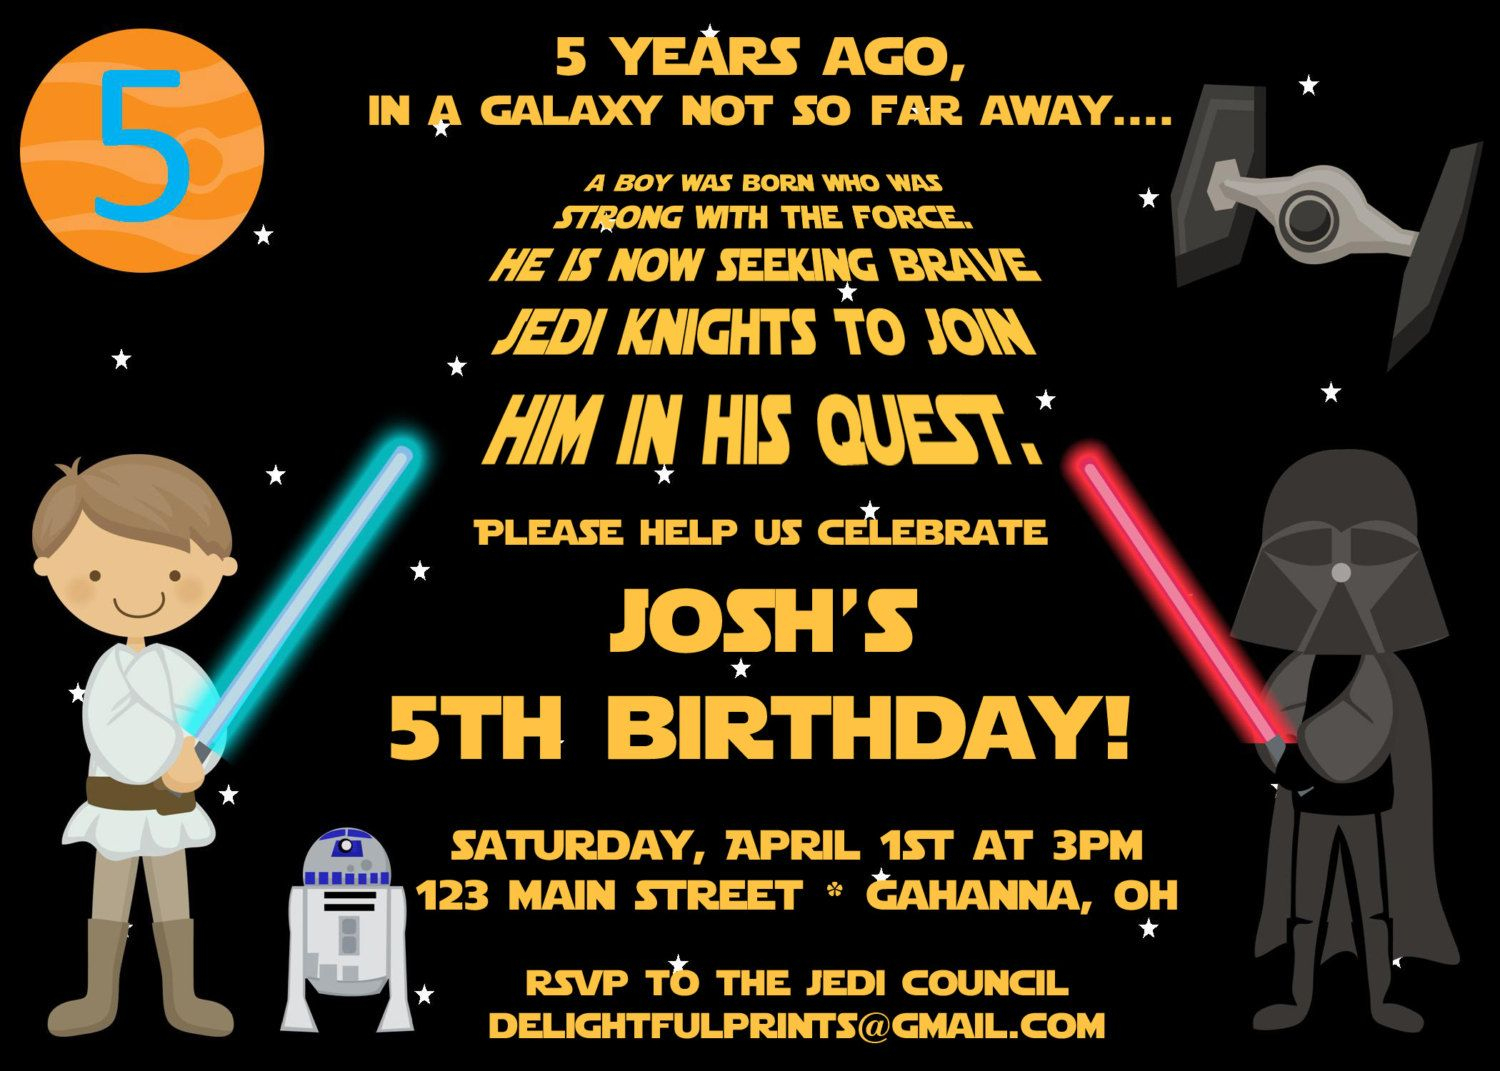 Star Wars Birthday Party Invitations | Free Printable Birthday - Star Wars Invitations Free Printable